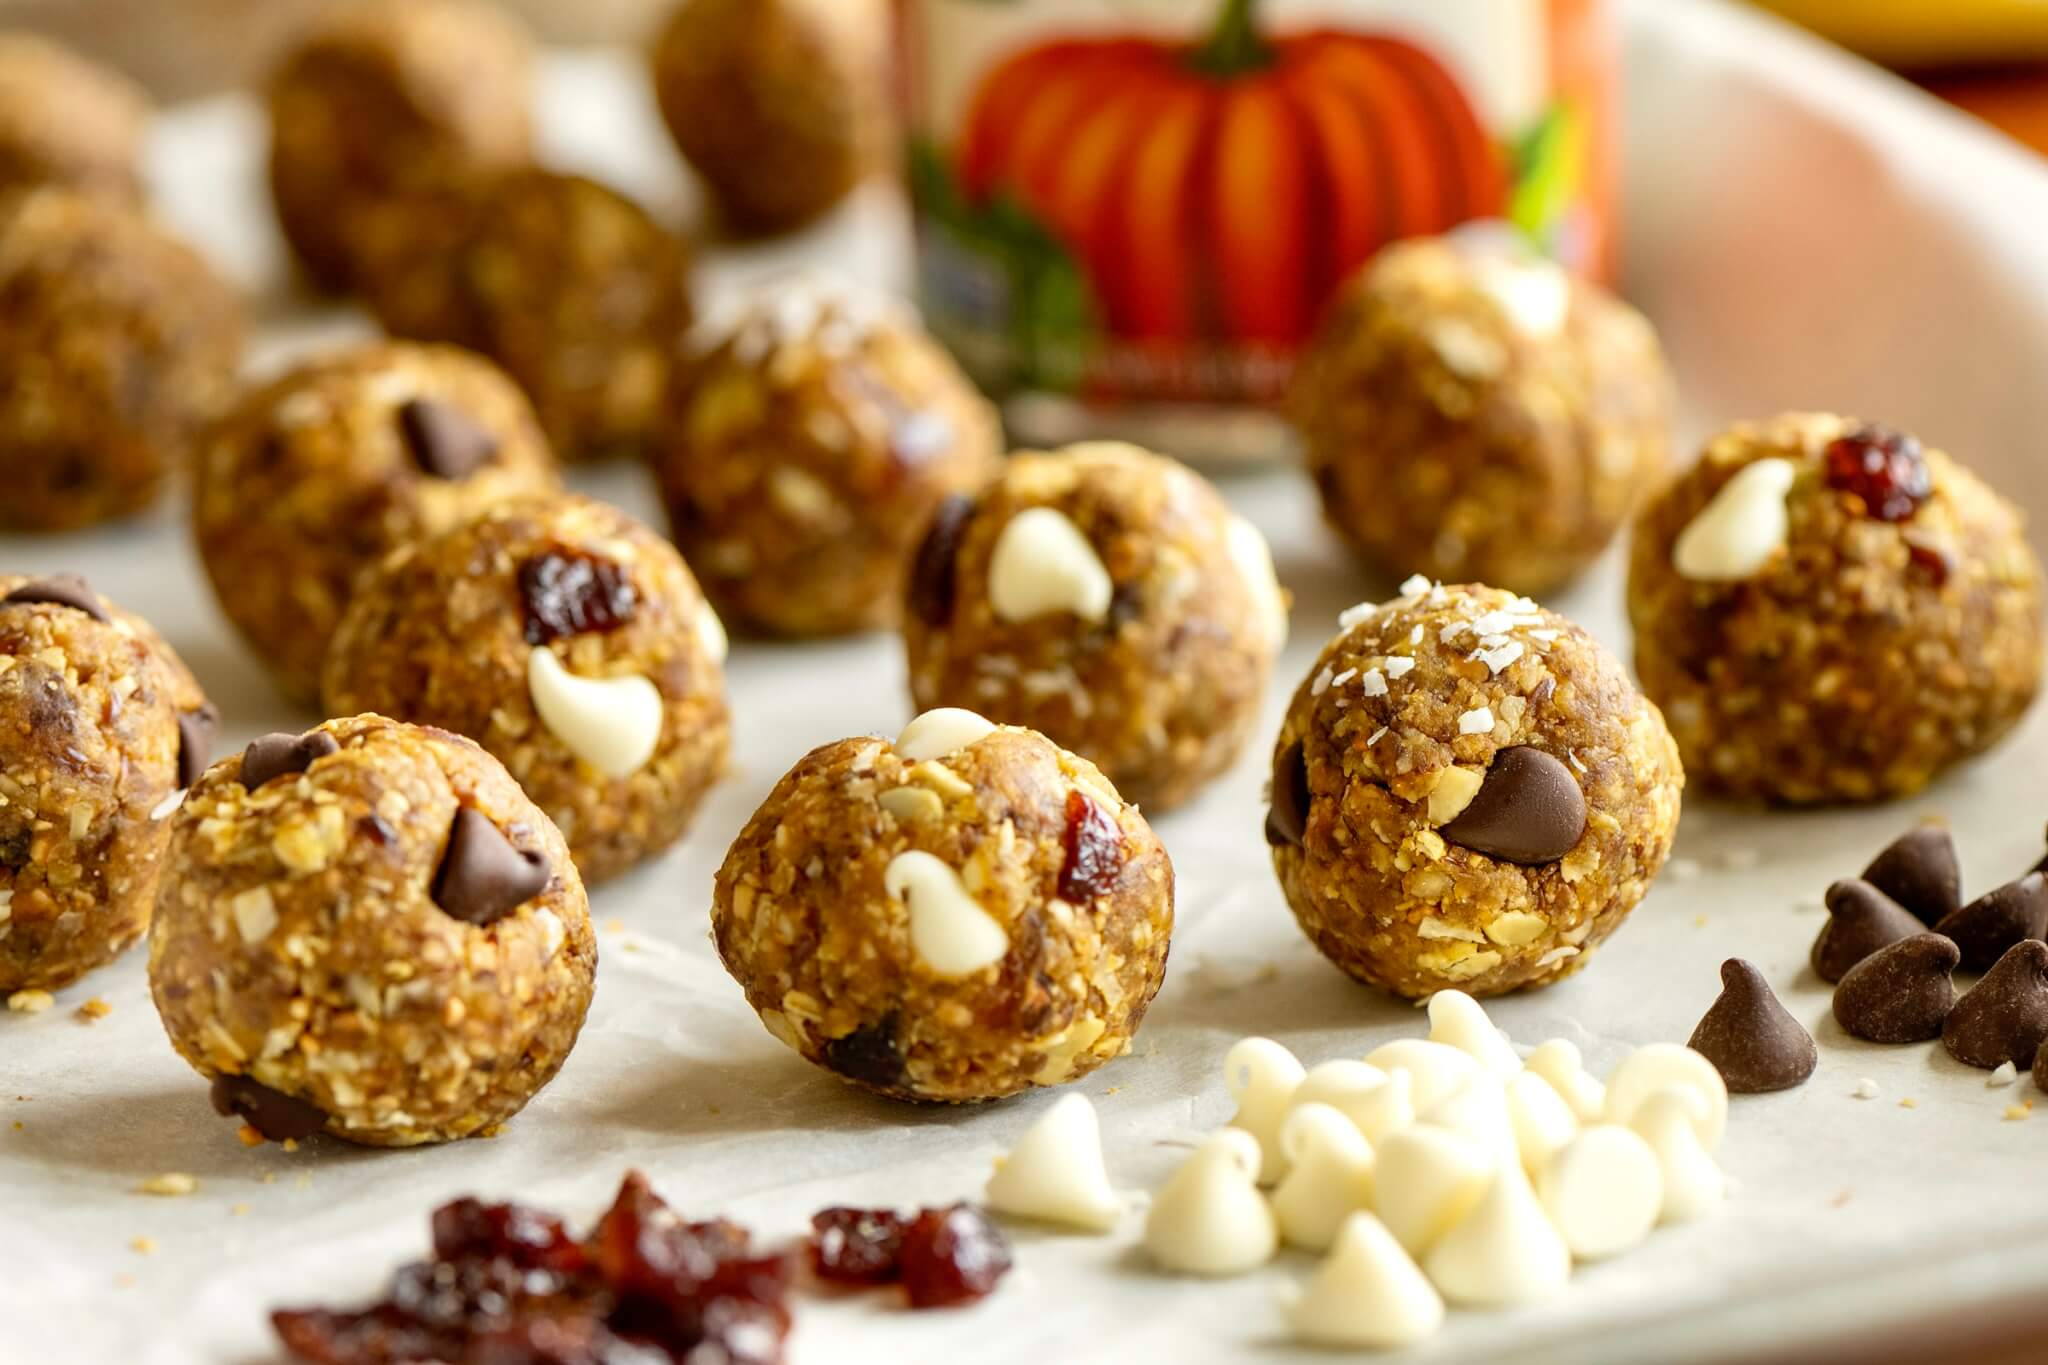 Capture the flavors of the season with these no-bake, satisfying bites that come together quickly and offer an option with zero added sugars or syrups.